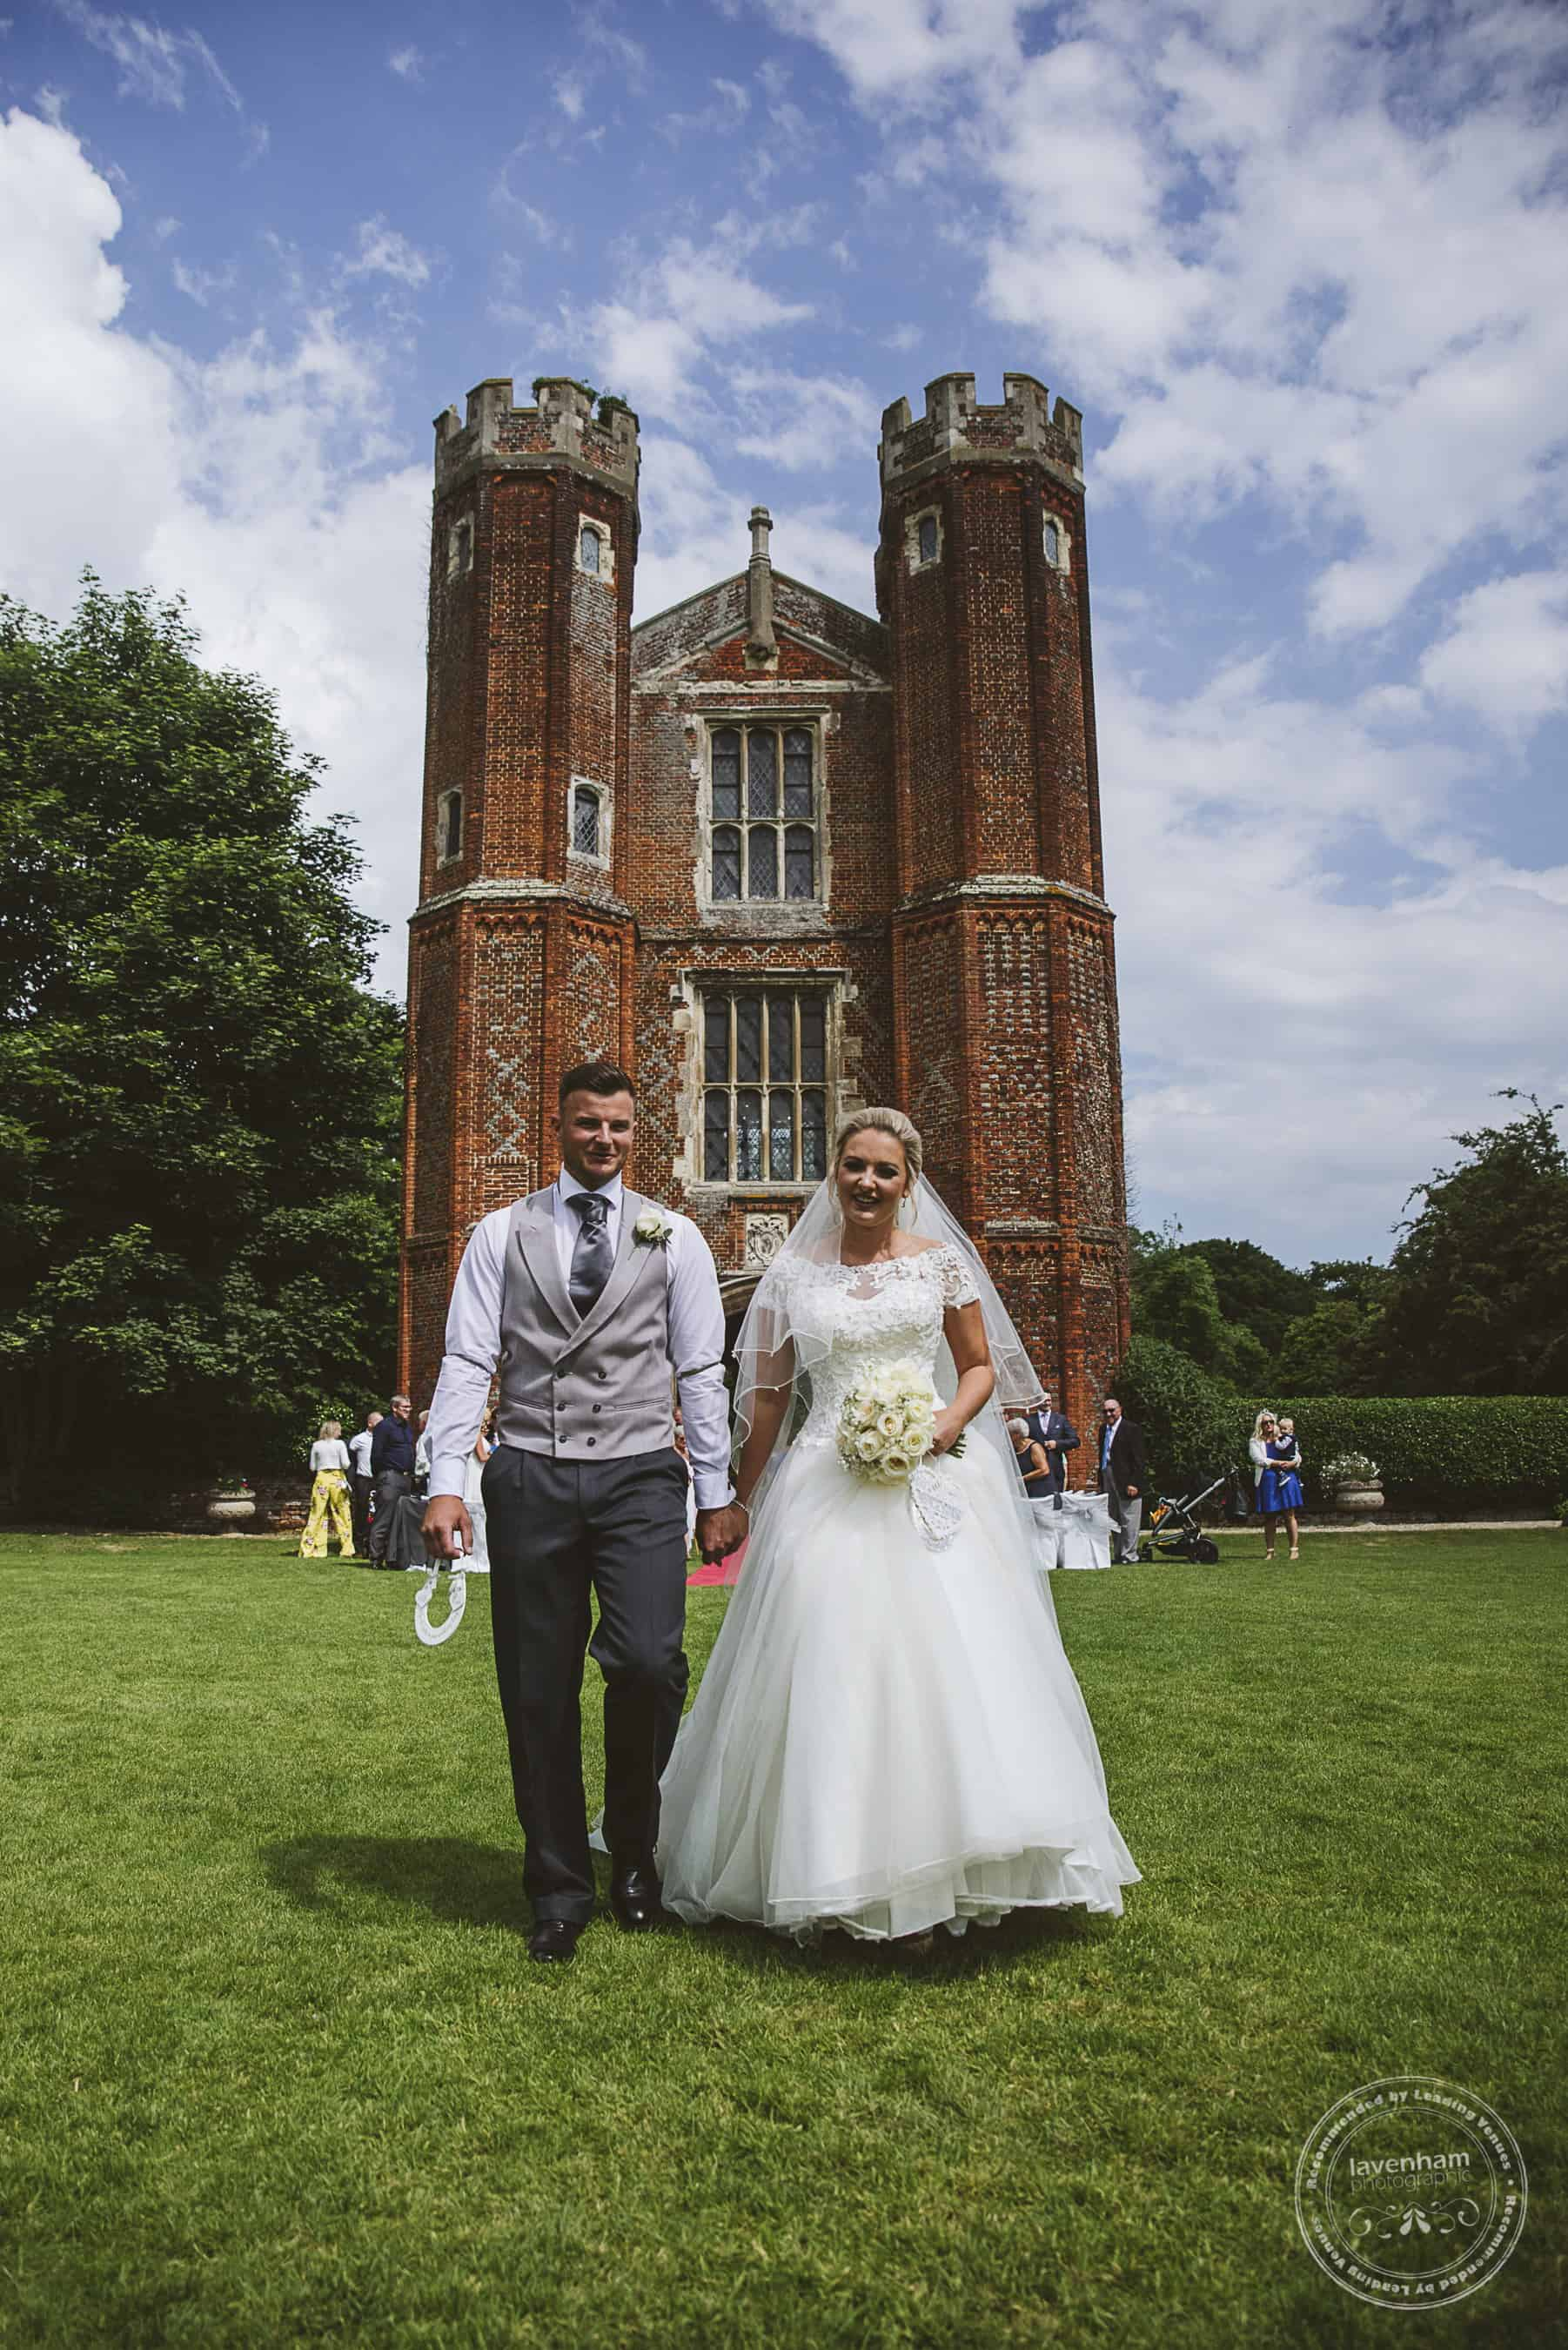 030618 Leez Priory Wedding Photography Lavenham Photographic 047